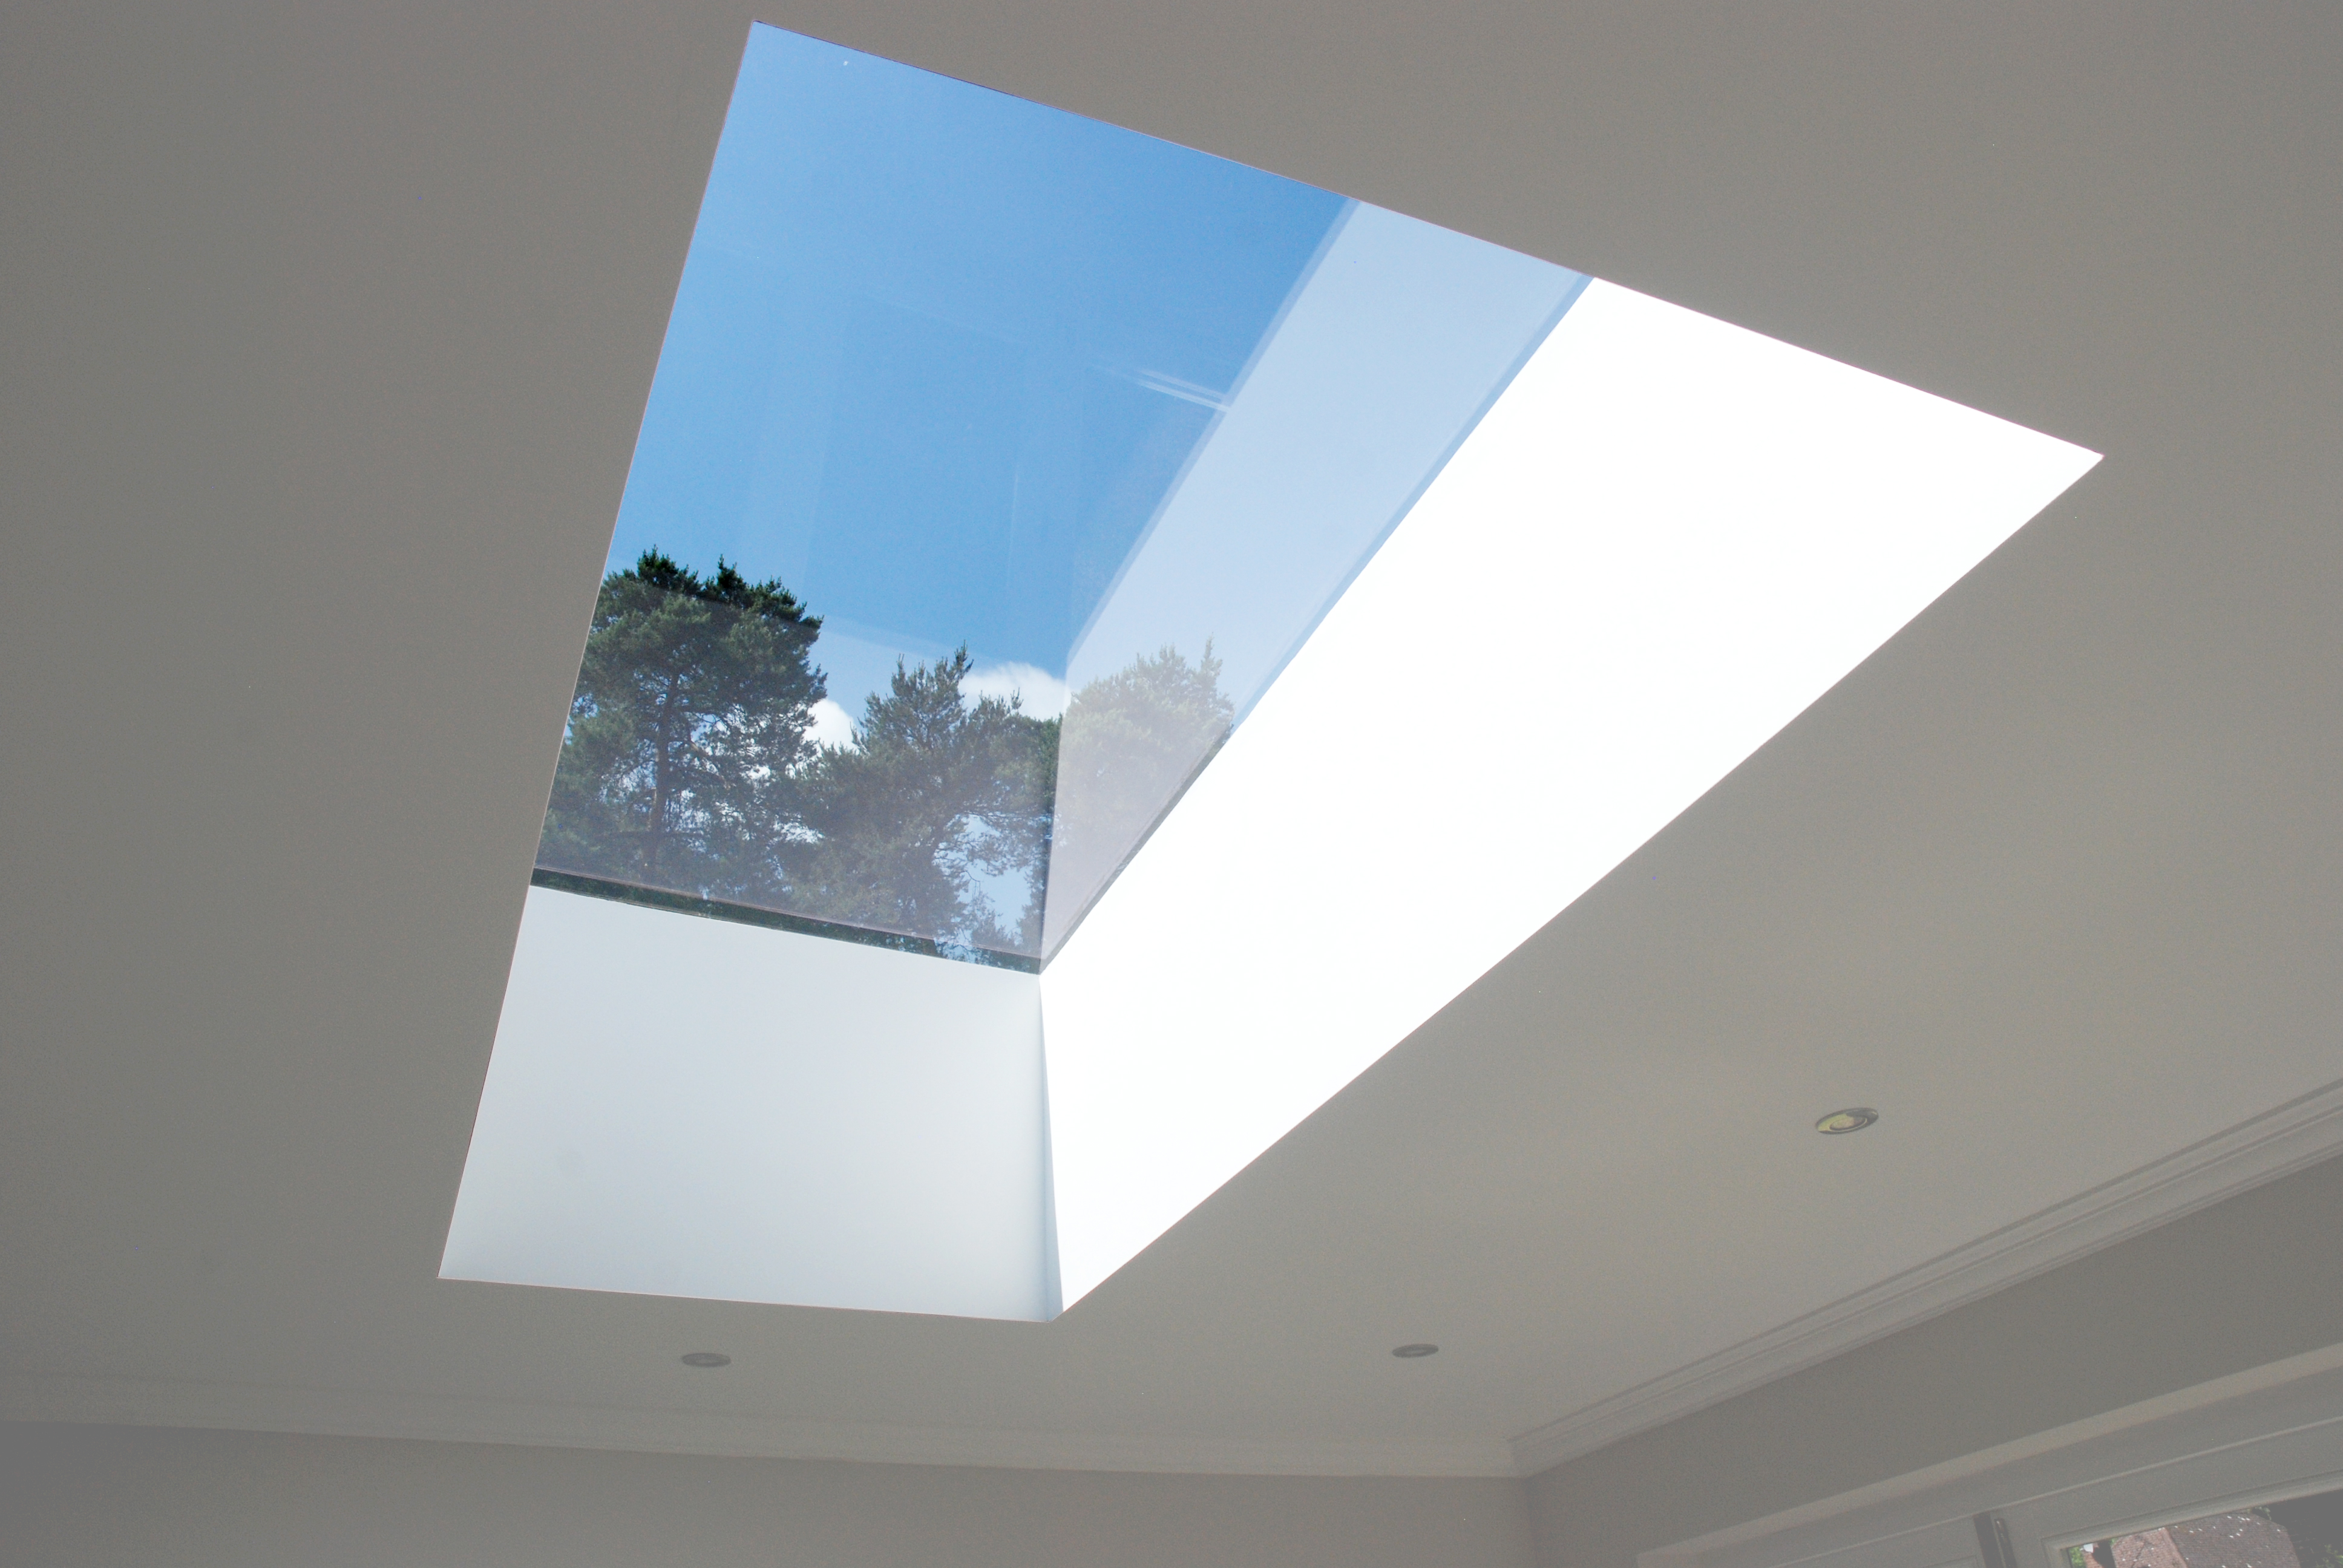 pure glass flat roof light provides an uninterrupted view above and doesn't affect the external view of the home